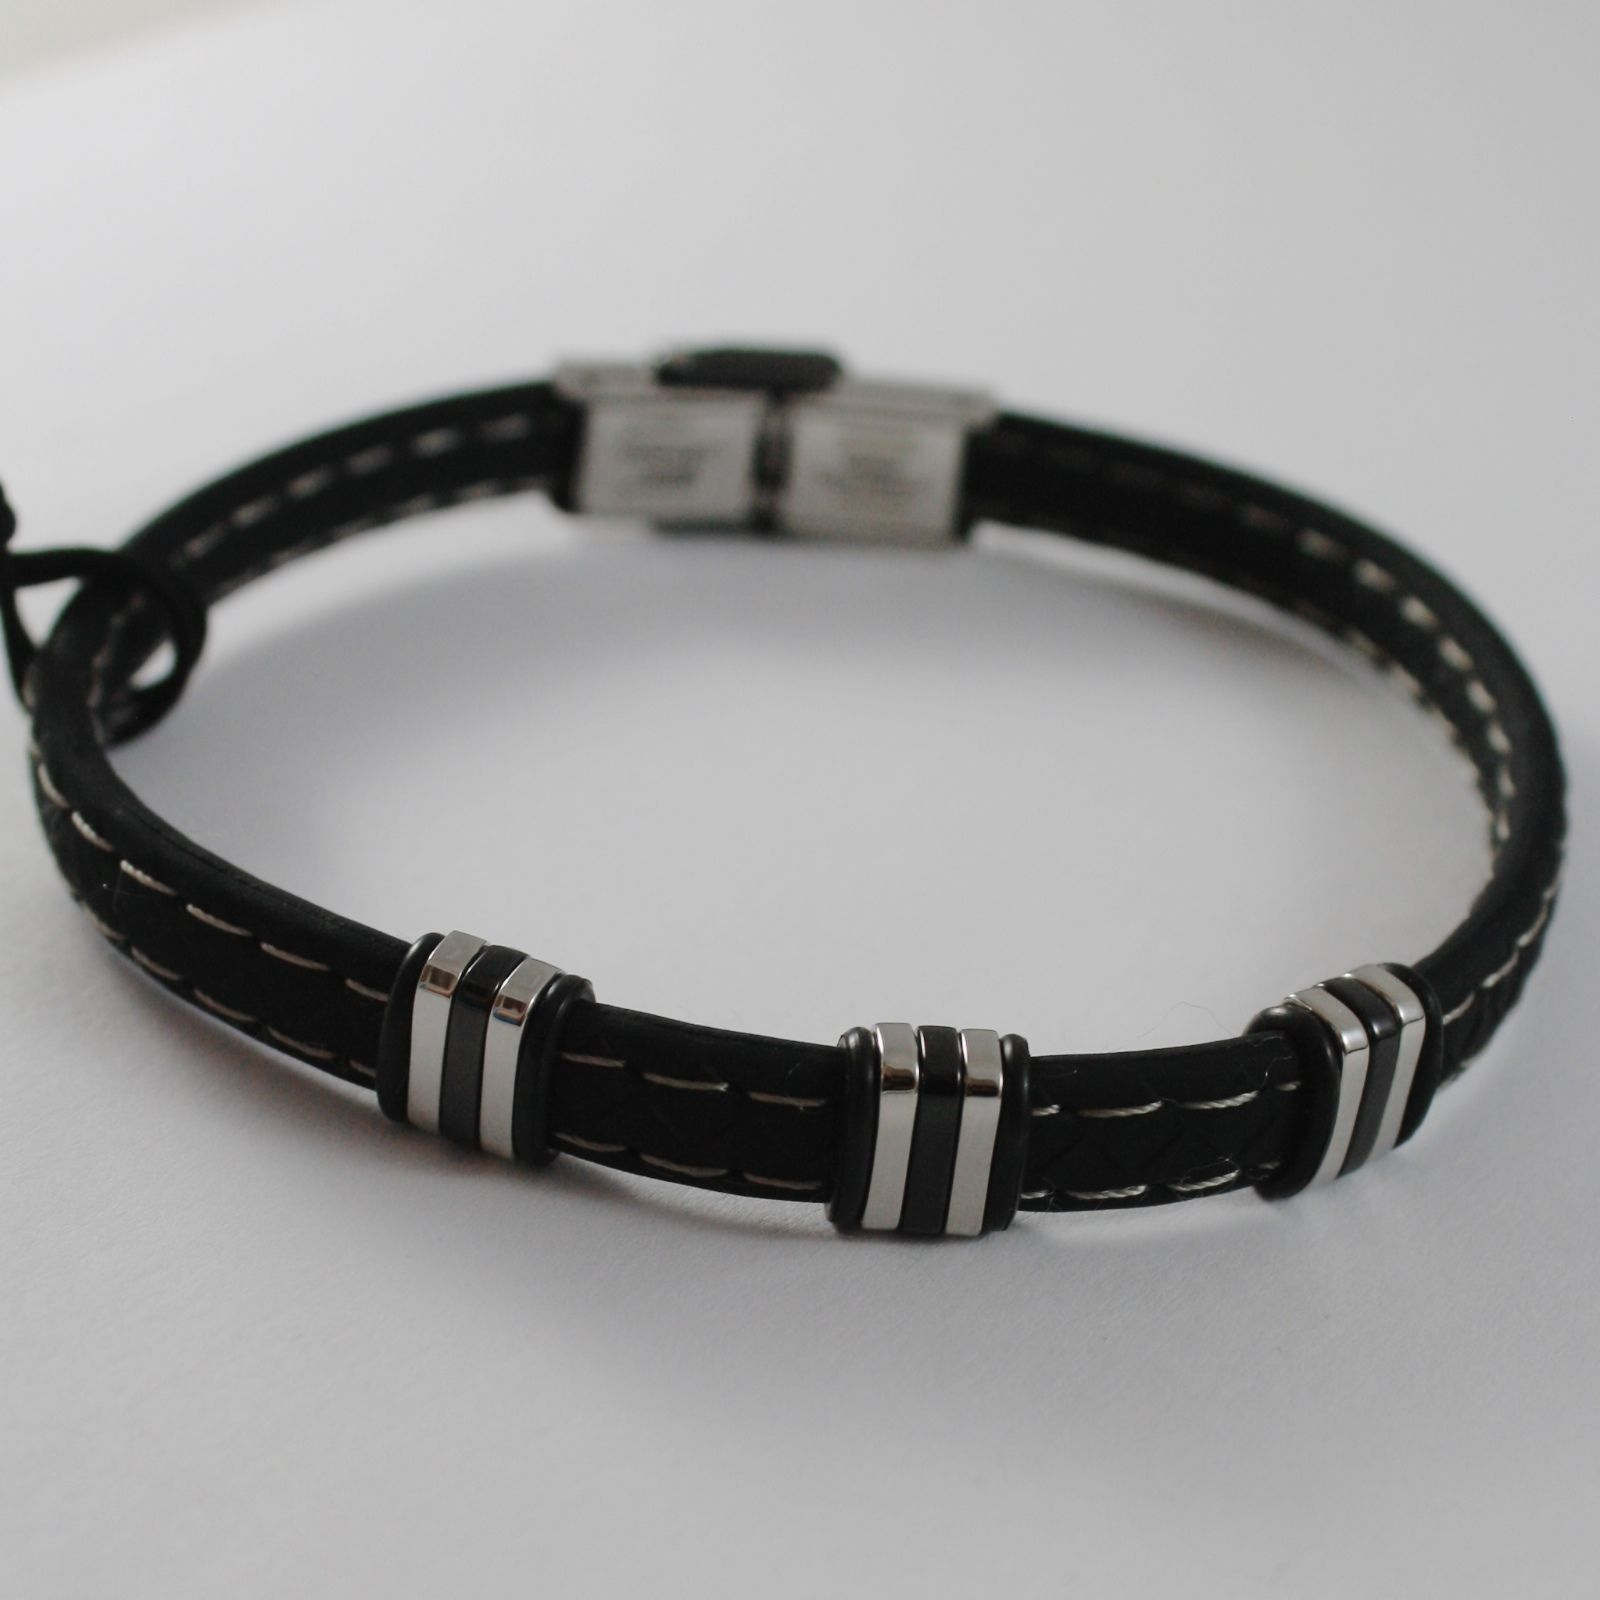 MEN'S BRACELET STEEL AND SILICONE BLACK CESARE PACIOTTI 4US 4UBR1398